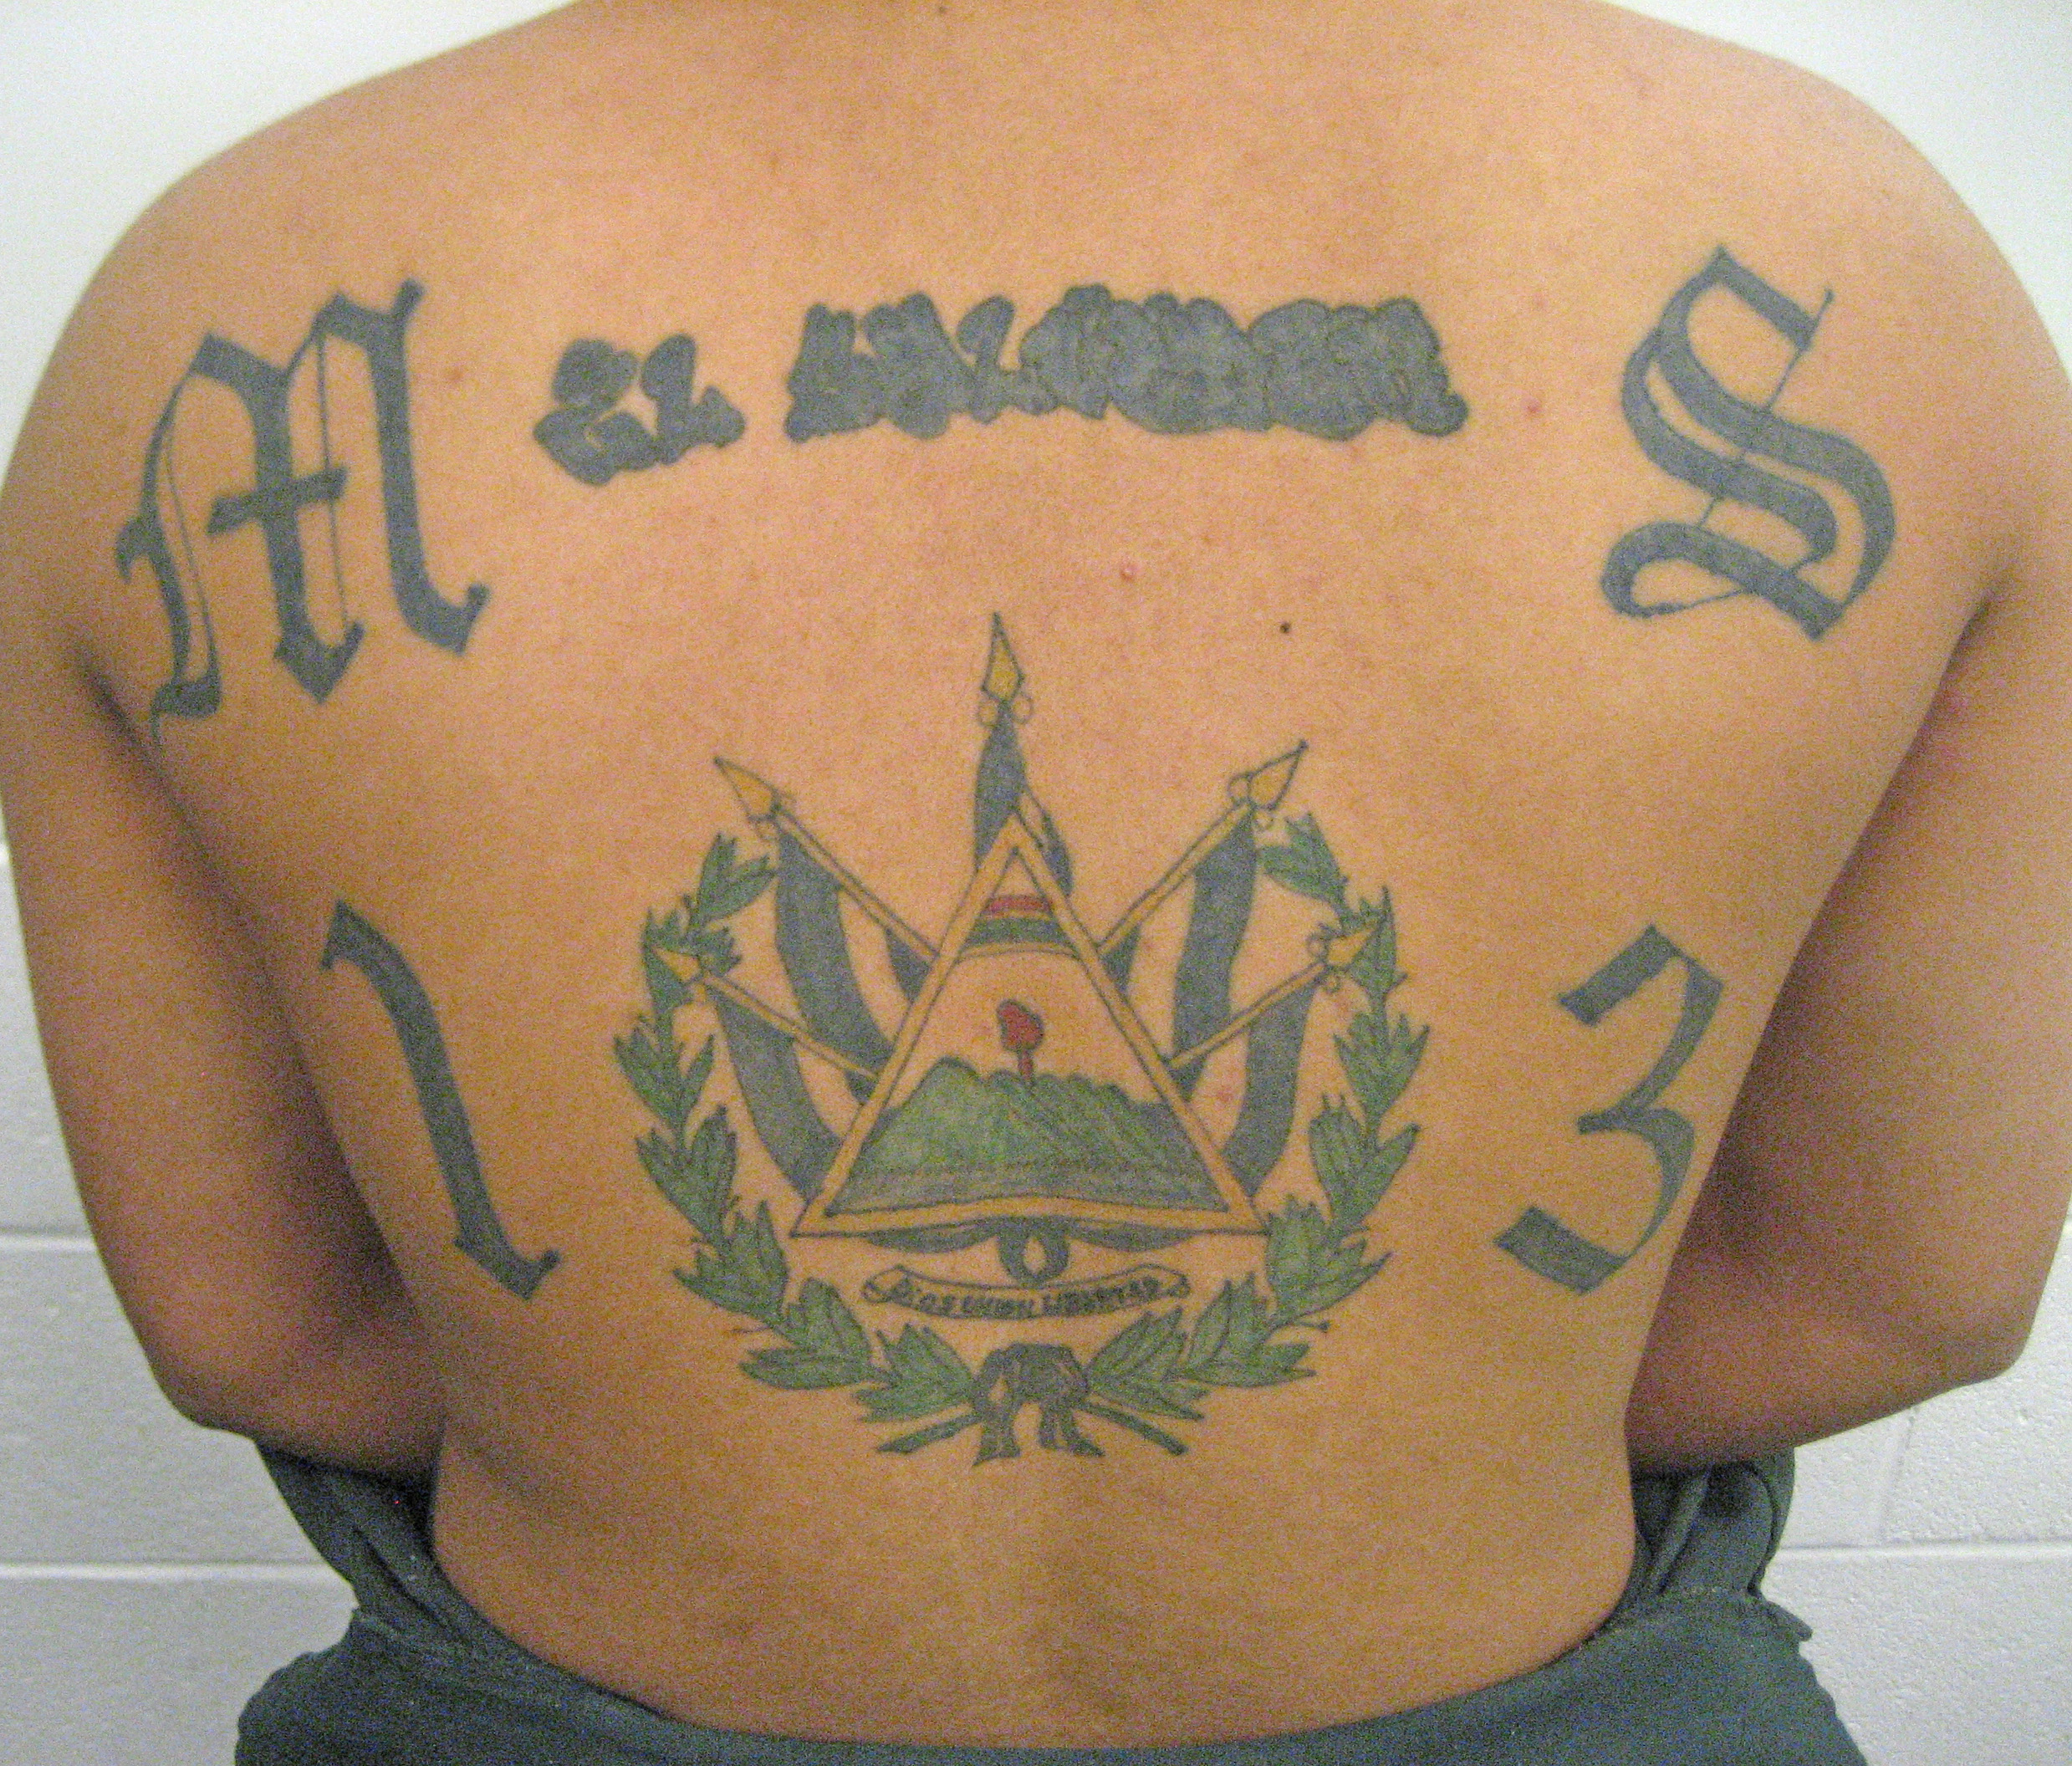 11 popular prison tattoos and their meanings explained